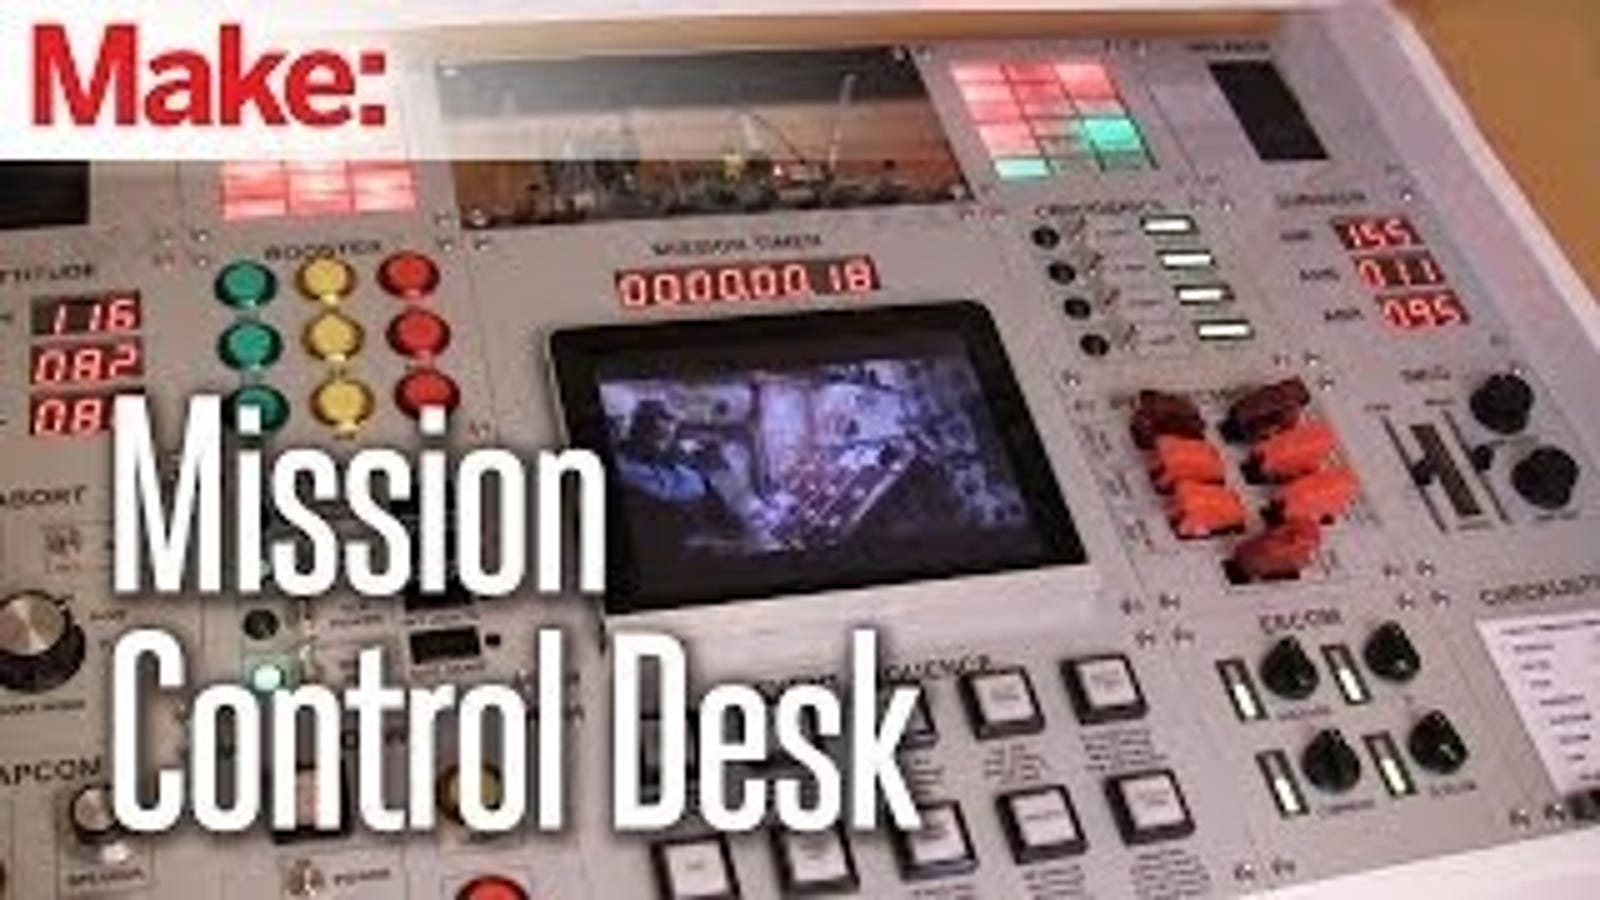 Oh Man, I Want This DIY Mission Control Desk So So Bad